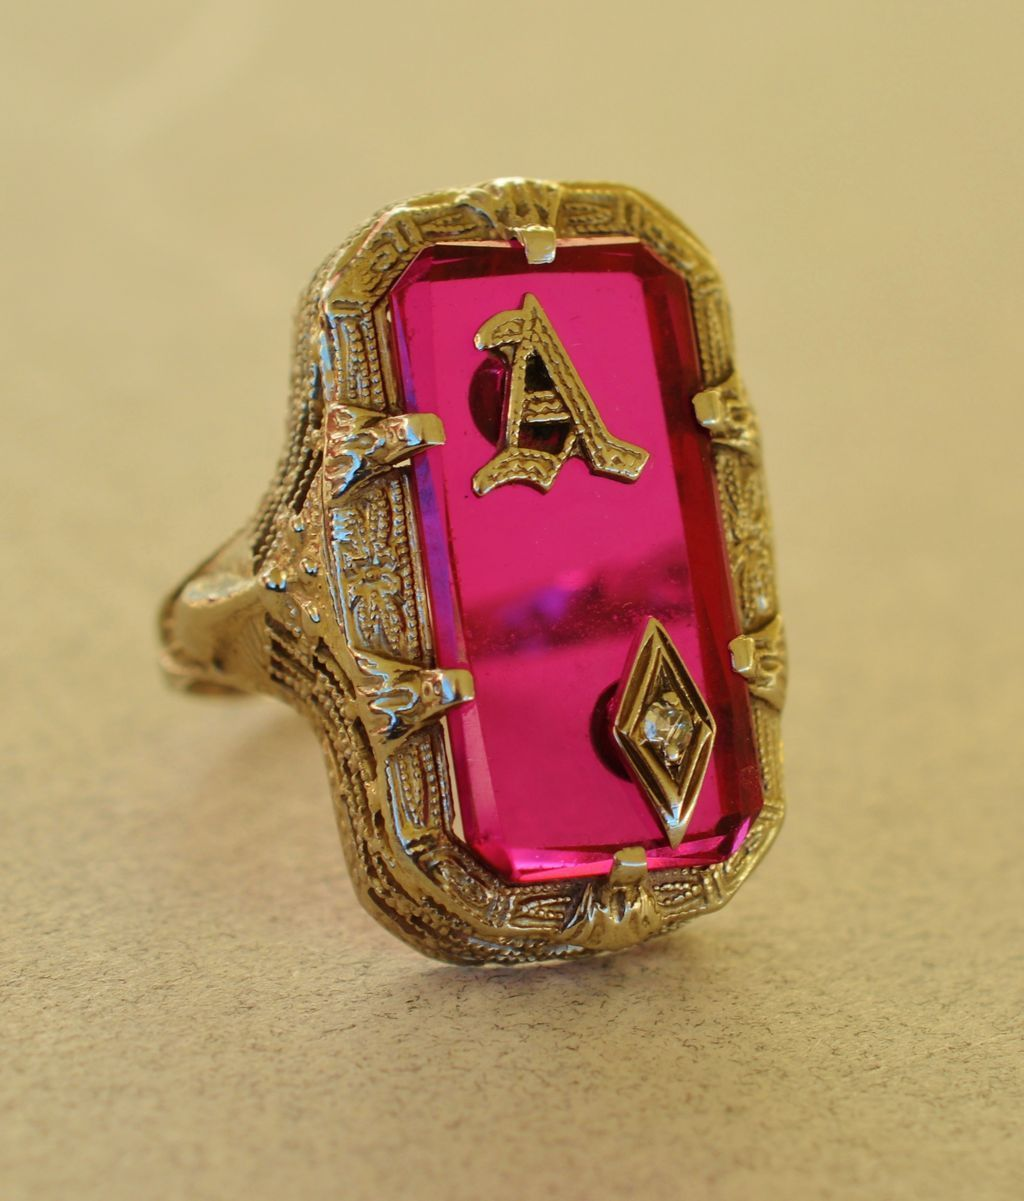 Antique 14kt Gold Filigree Ruby Glass Initial Ring From